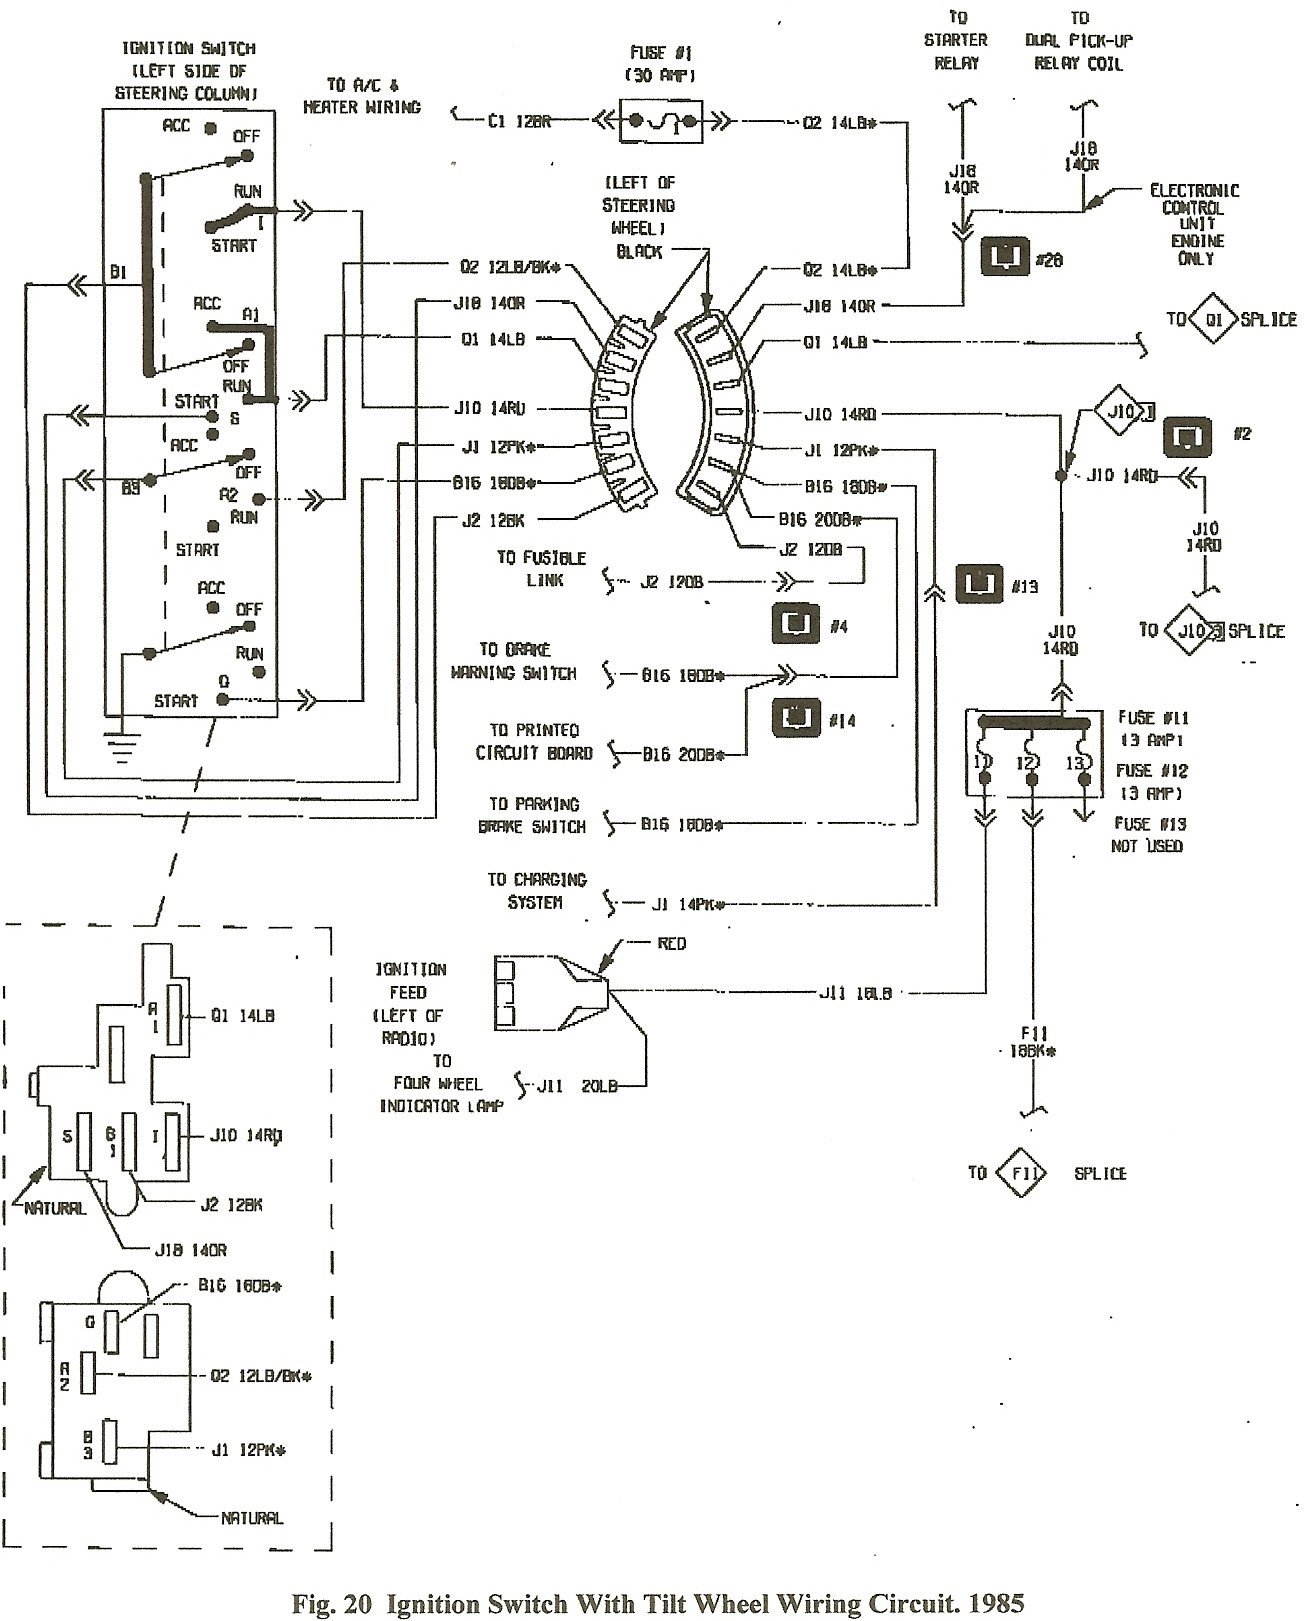 File Name 92 Dakotum Wire Diagram